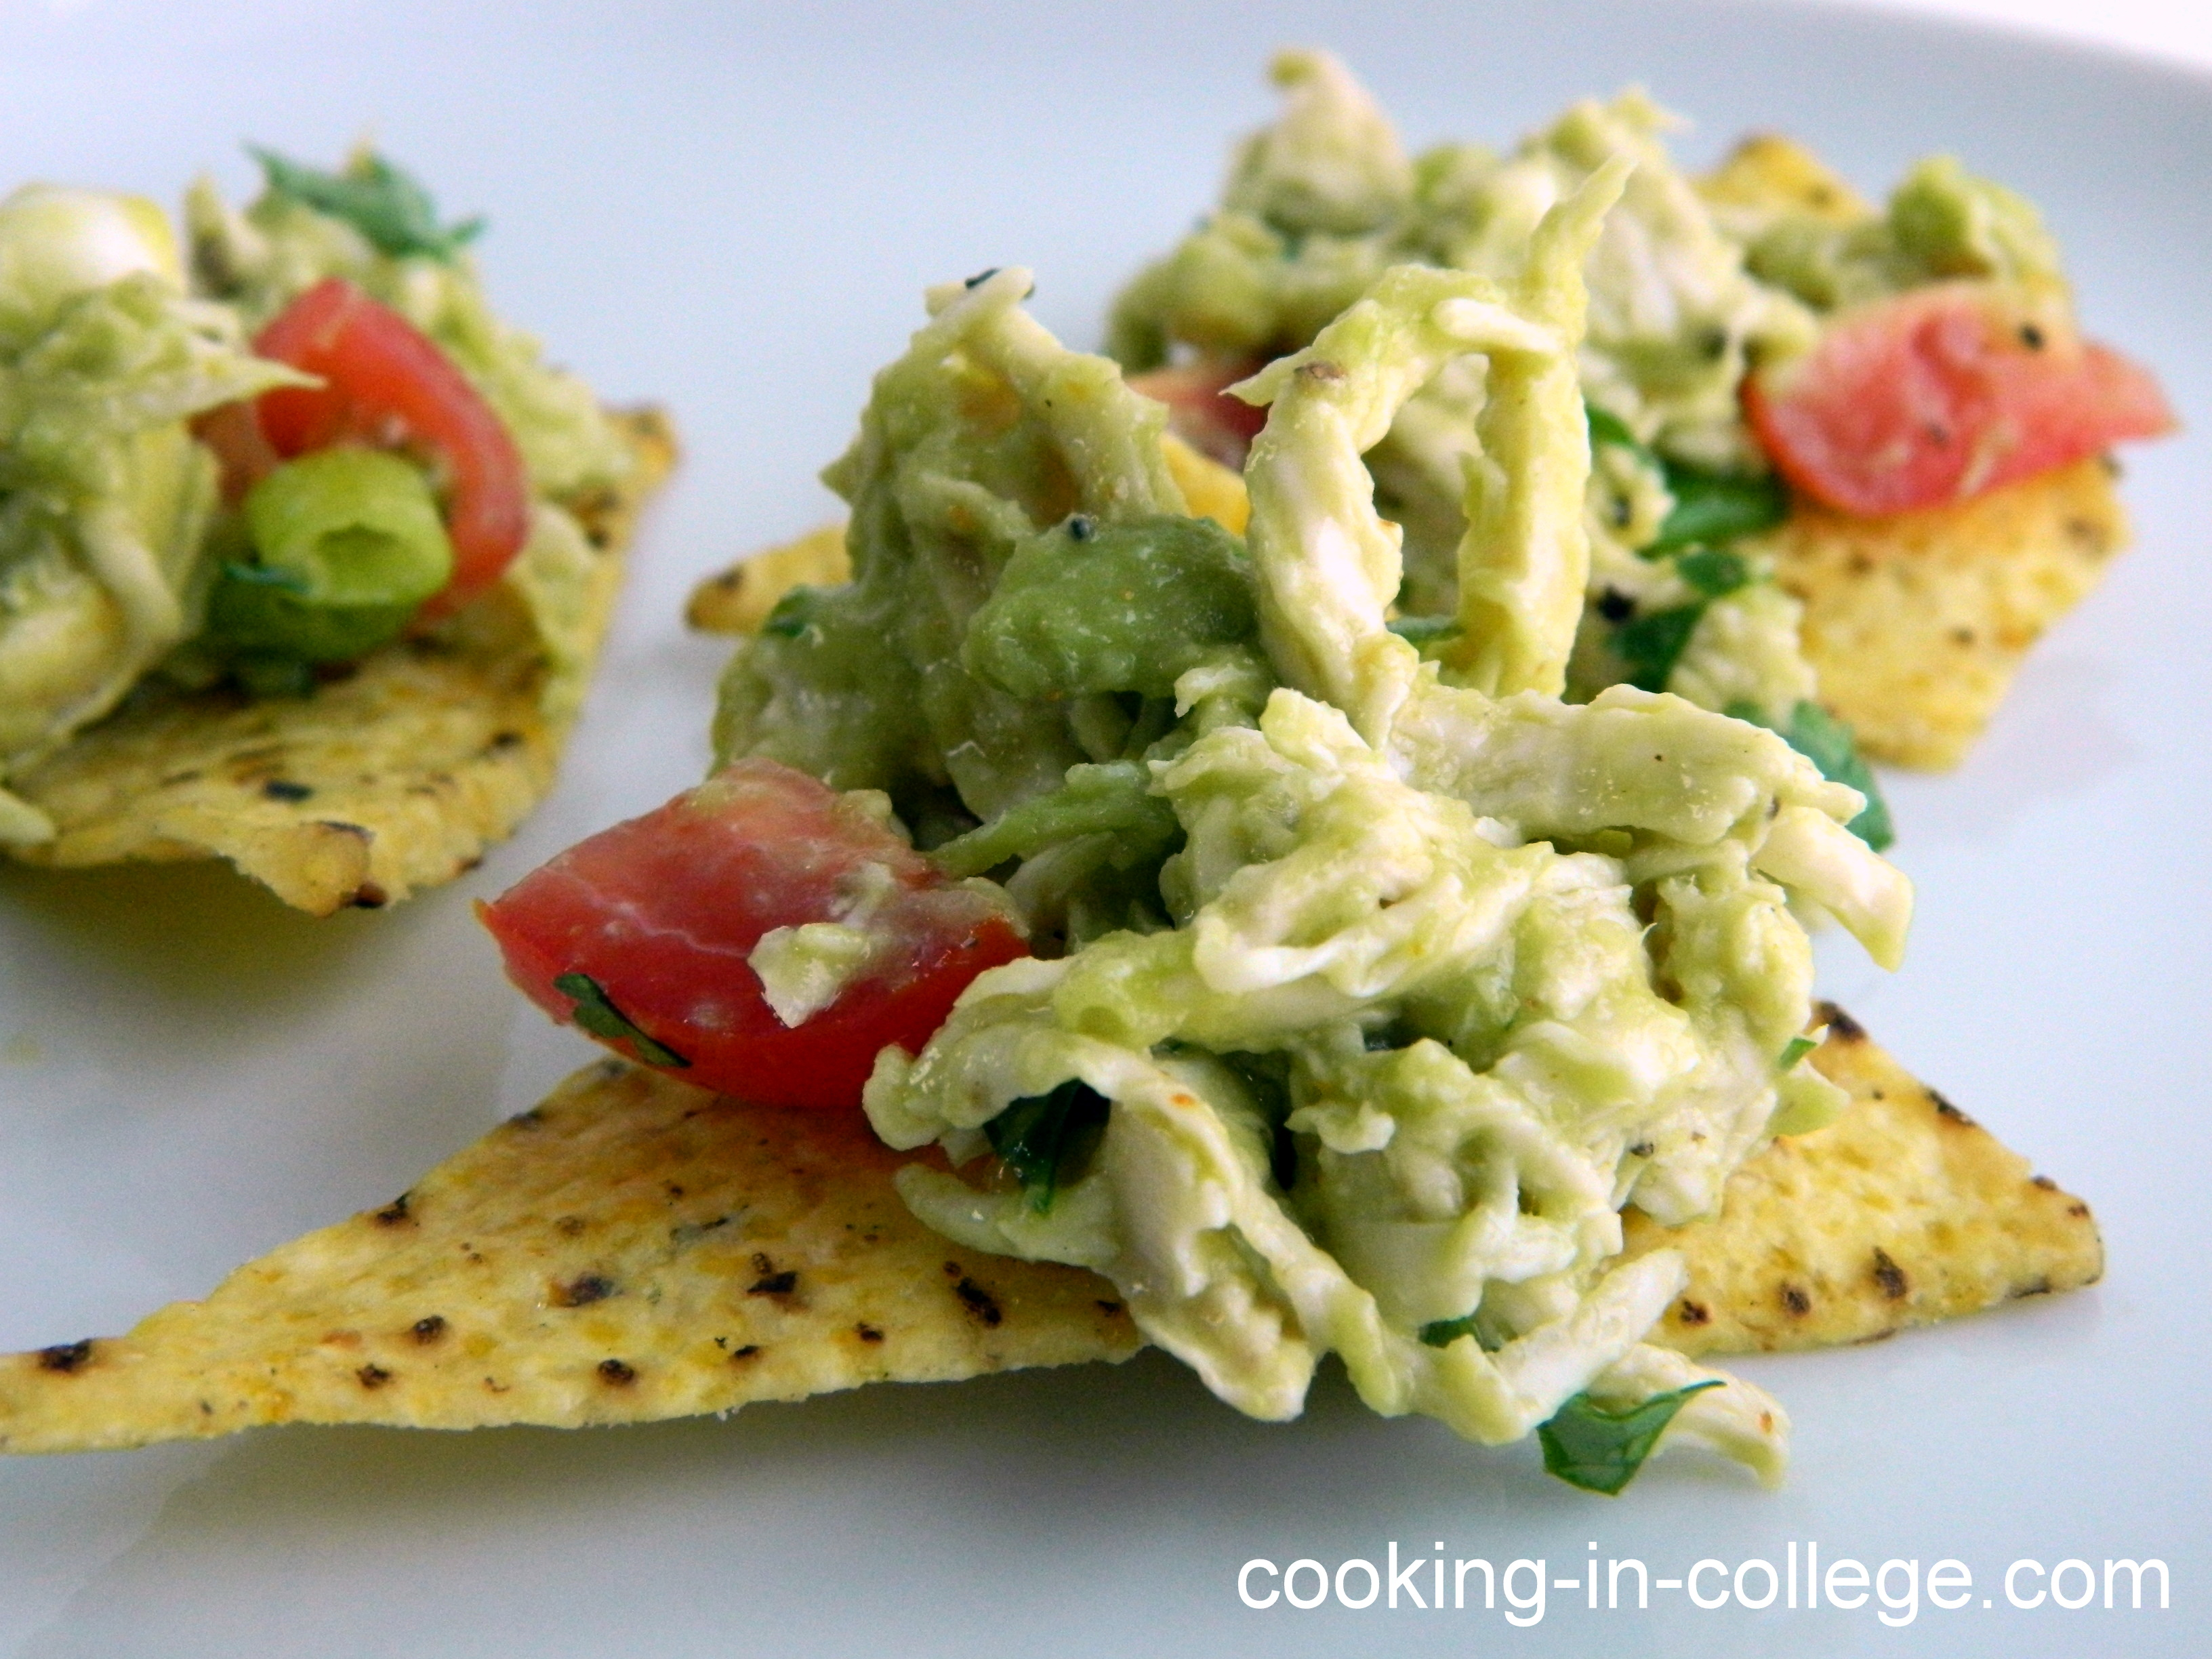 Cooking in College - Avocado Chicken Salad